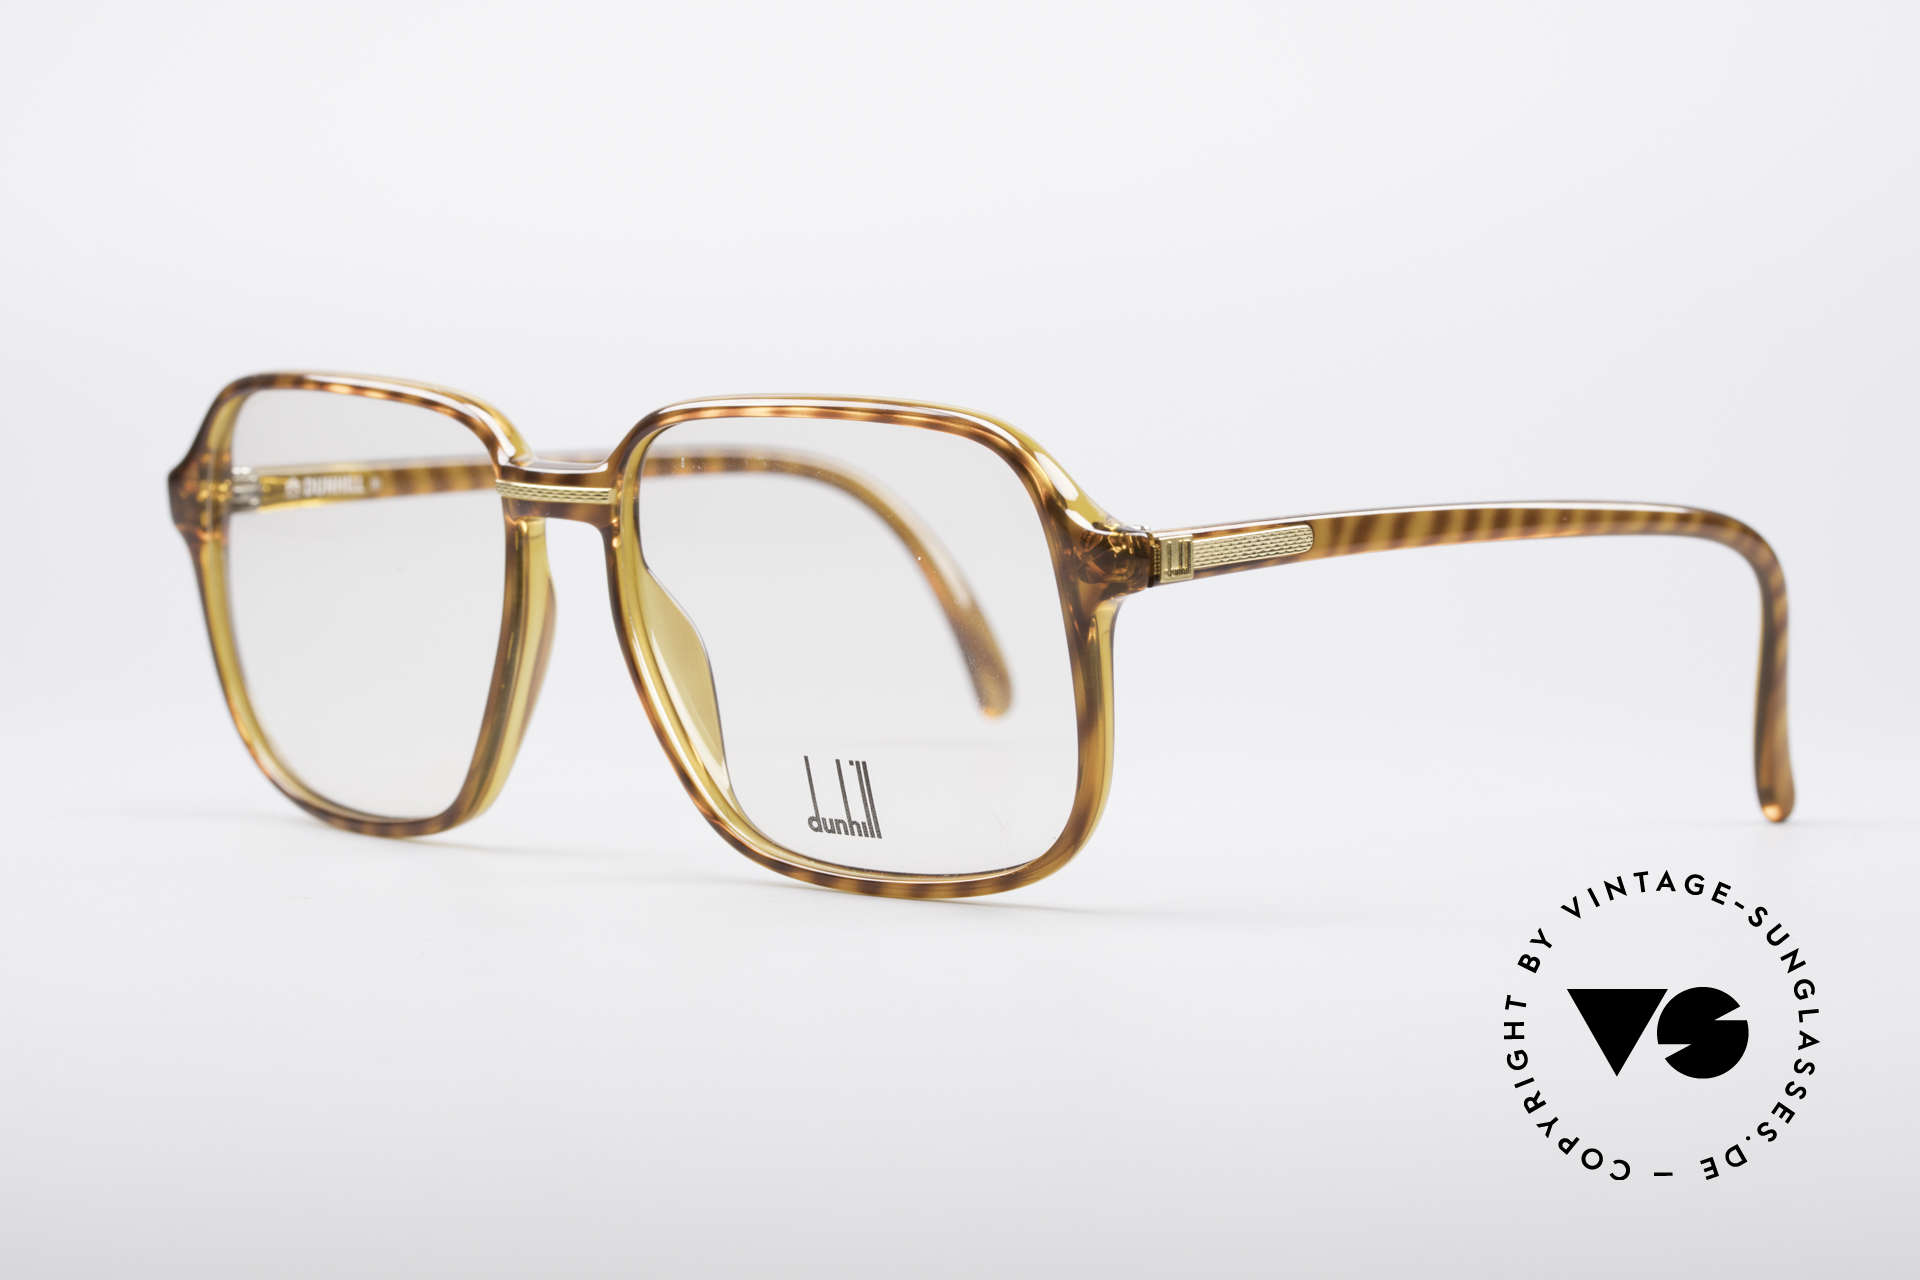 Dunhill 6060 Classic 80's Eyeglasses, 90's gentlemen's style (characteristical A. DUNHILL), Made for Men